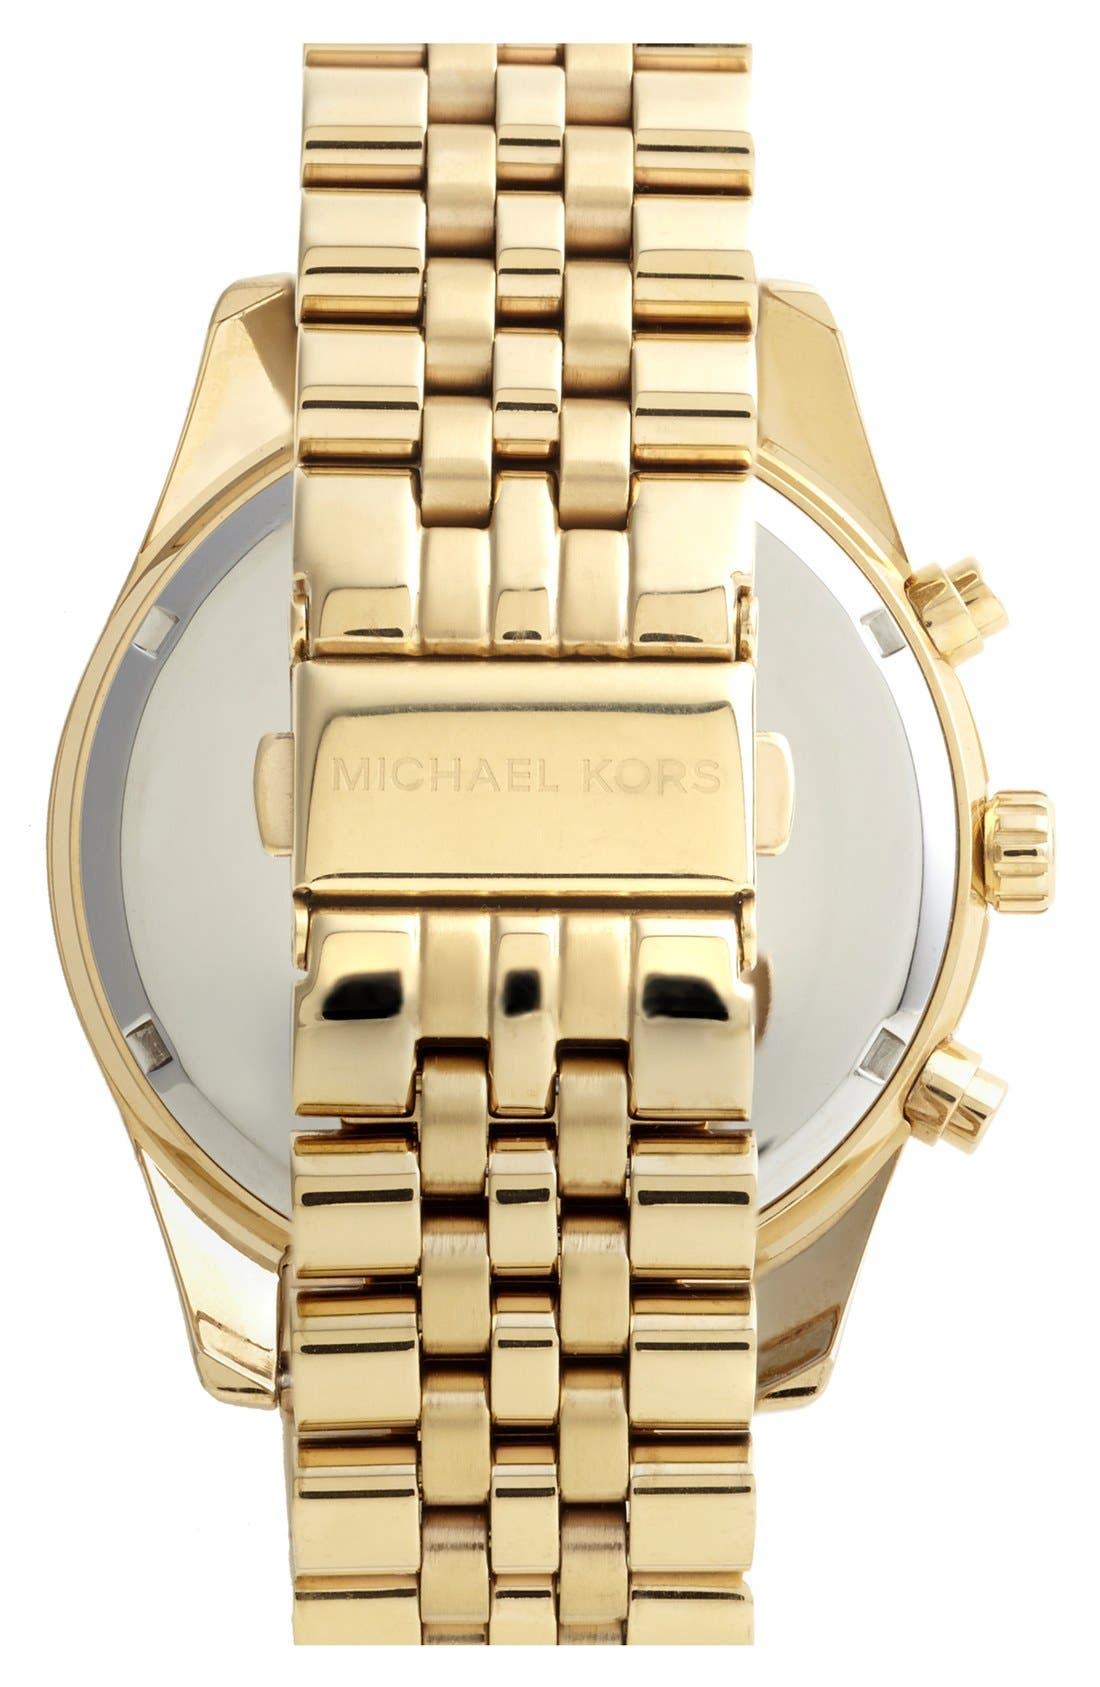 MICHAEL KORS, 'Large Lexington' Chronograph Bracelet Watch, 45mm, Alternate thumbnail 3, color, GOLD/ BLACK